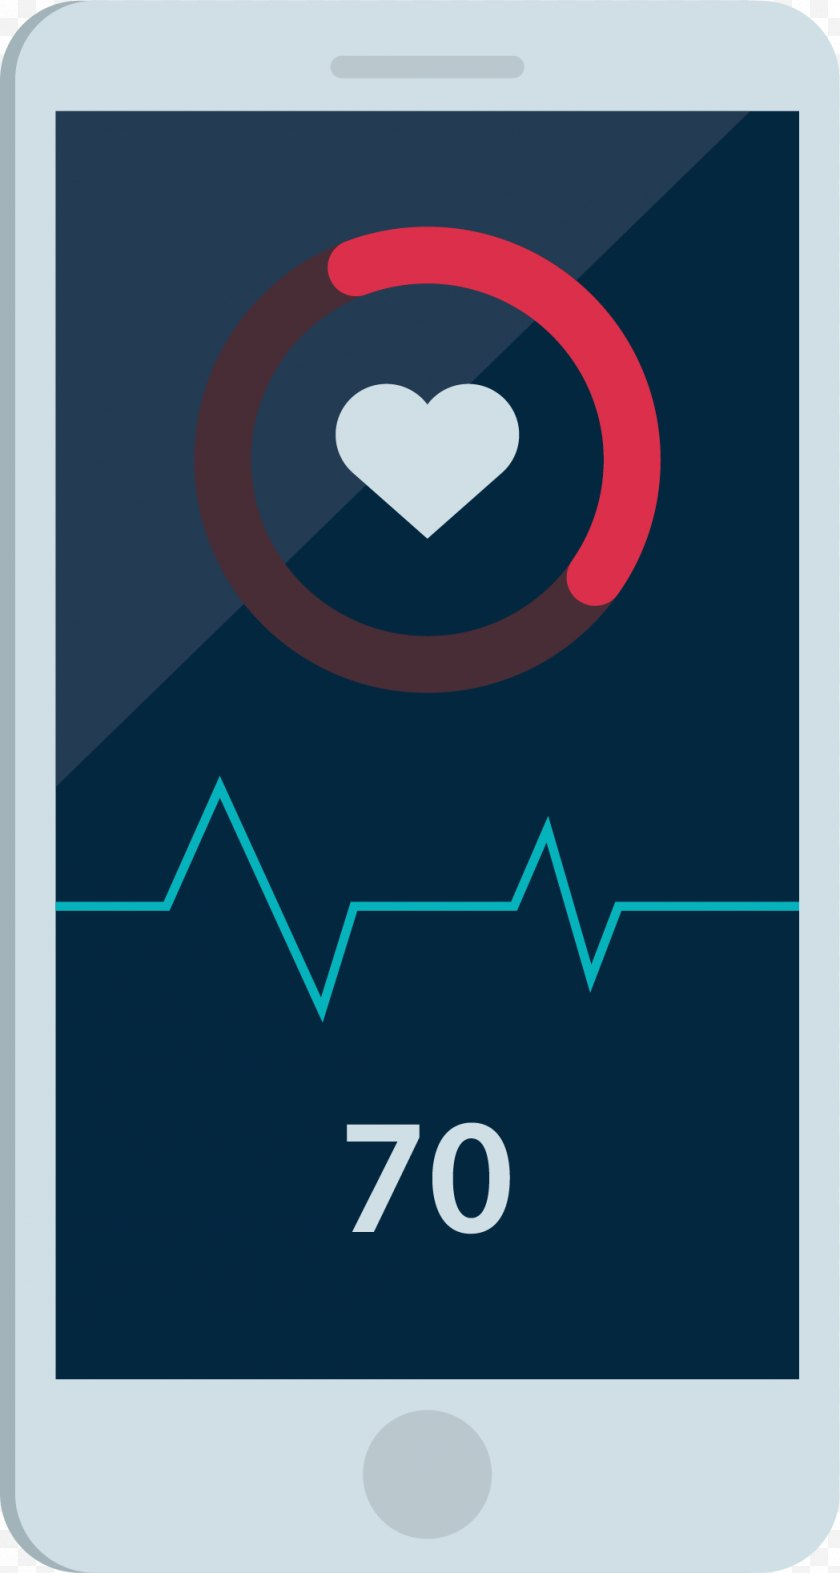 Brand - Heart Rate Electrocardiography - Symbol - Smartphone Heartbeat Test Free PNG